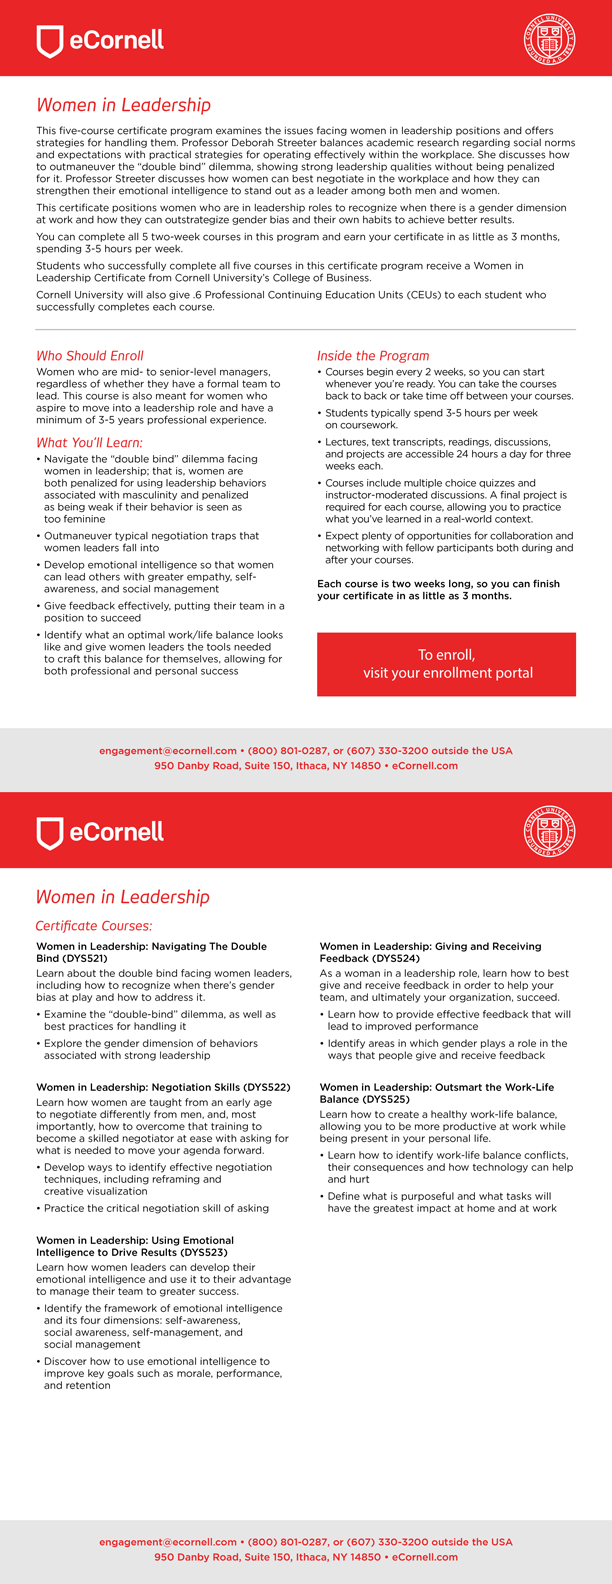 Women in Leadership Flyer for Corporations